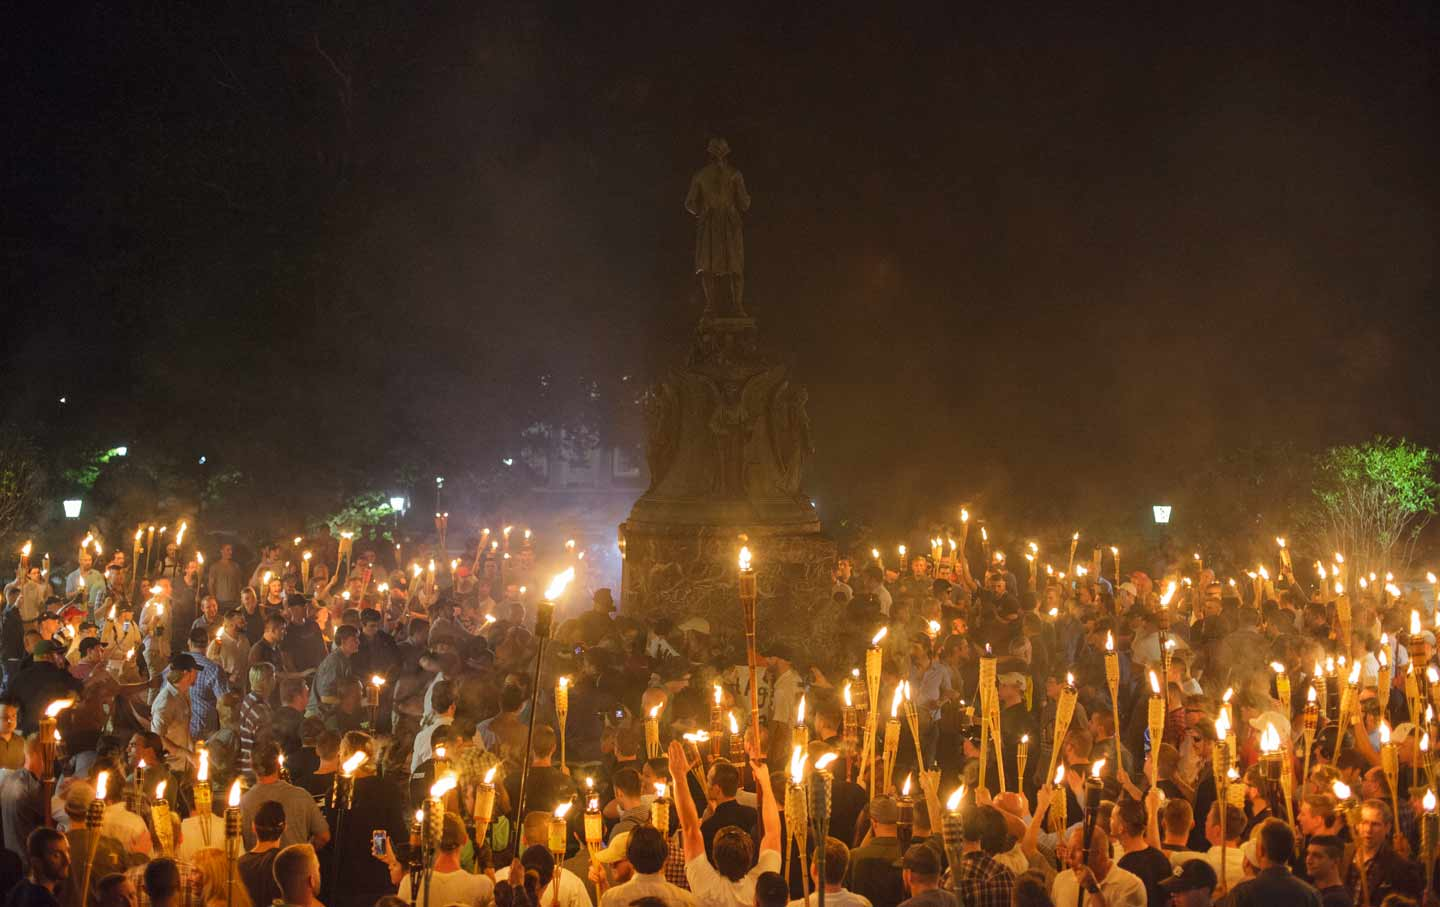 https://www.thenation.com/wp-content/uploads/2017/08/charlottesville-torches-rtr-img.jpg?scale=896&compress=80